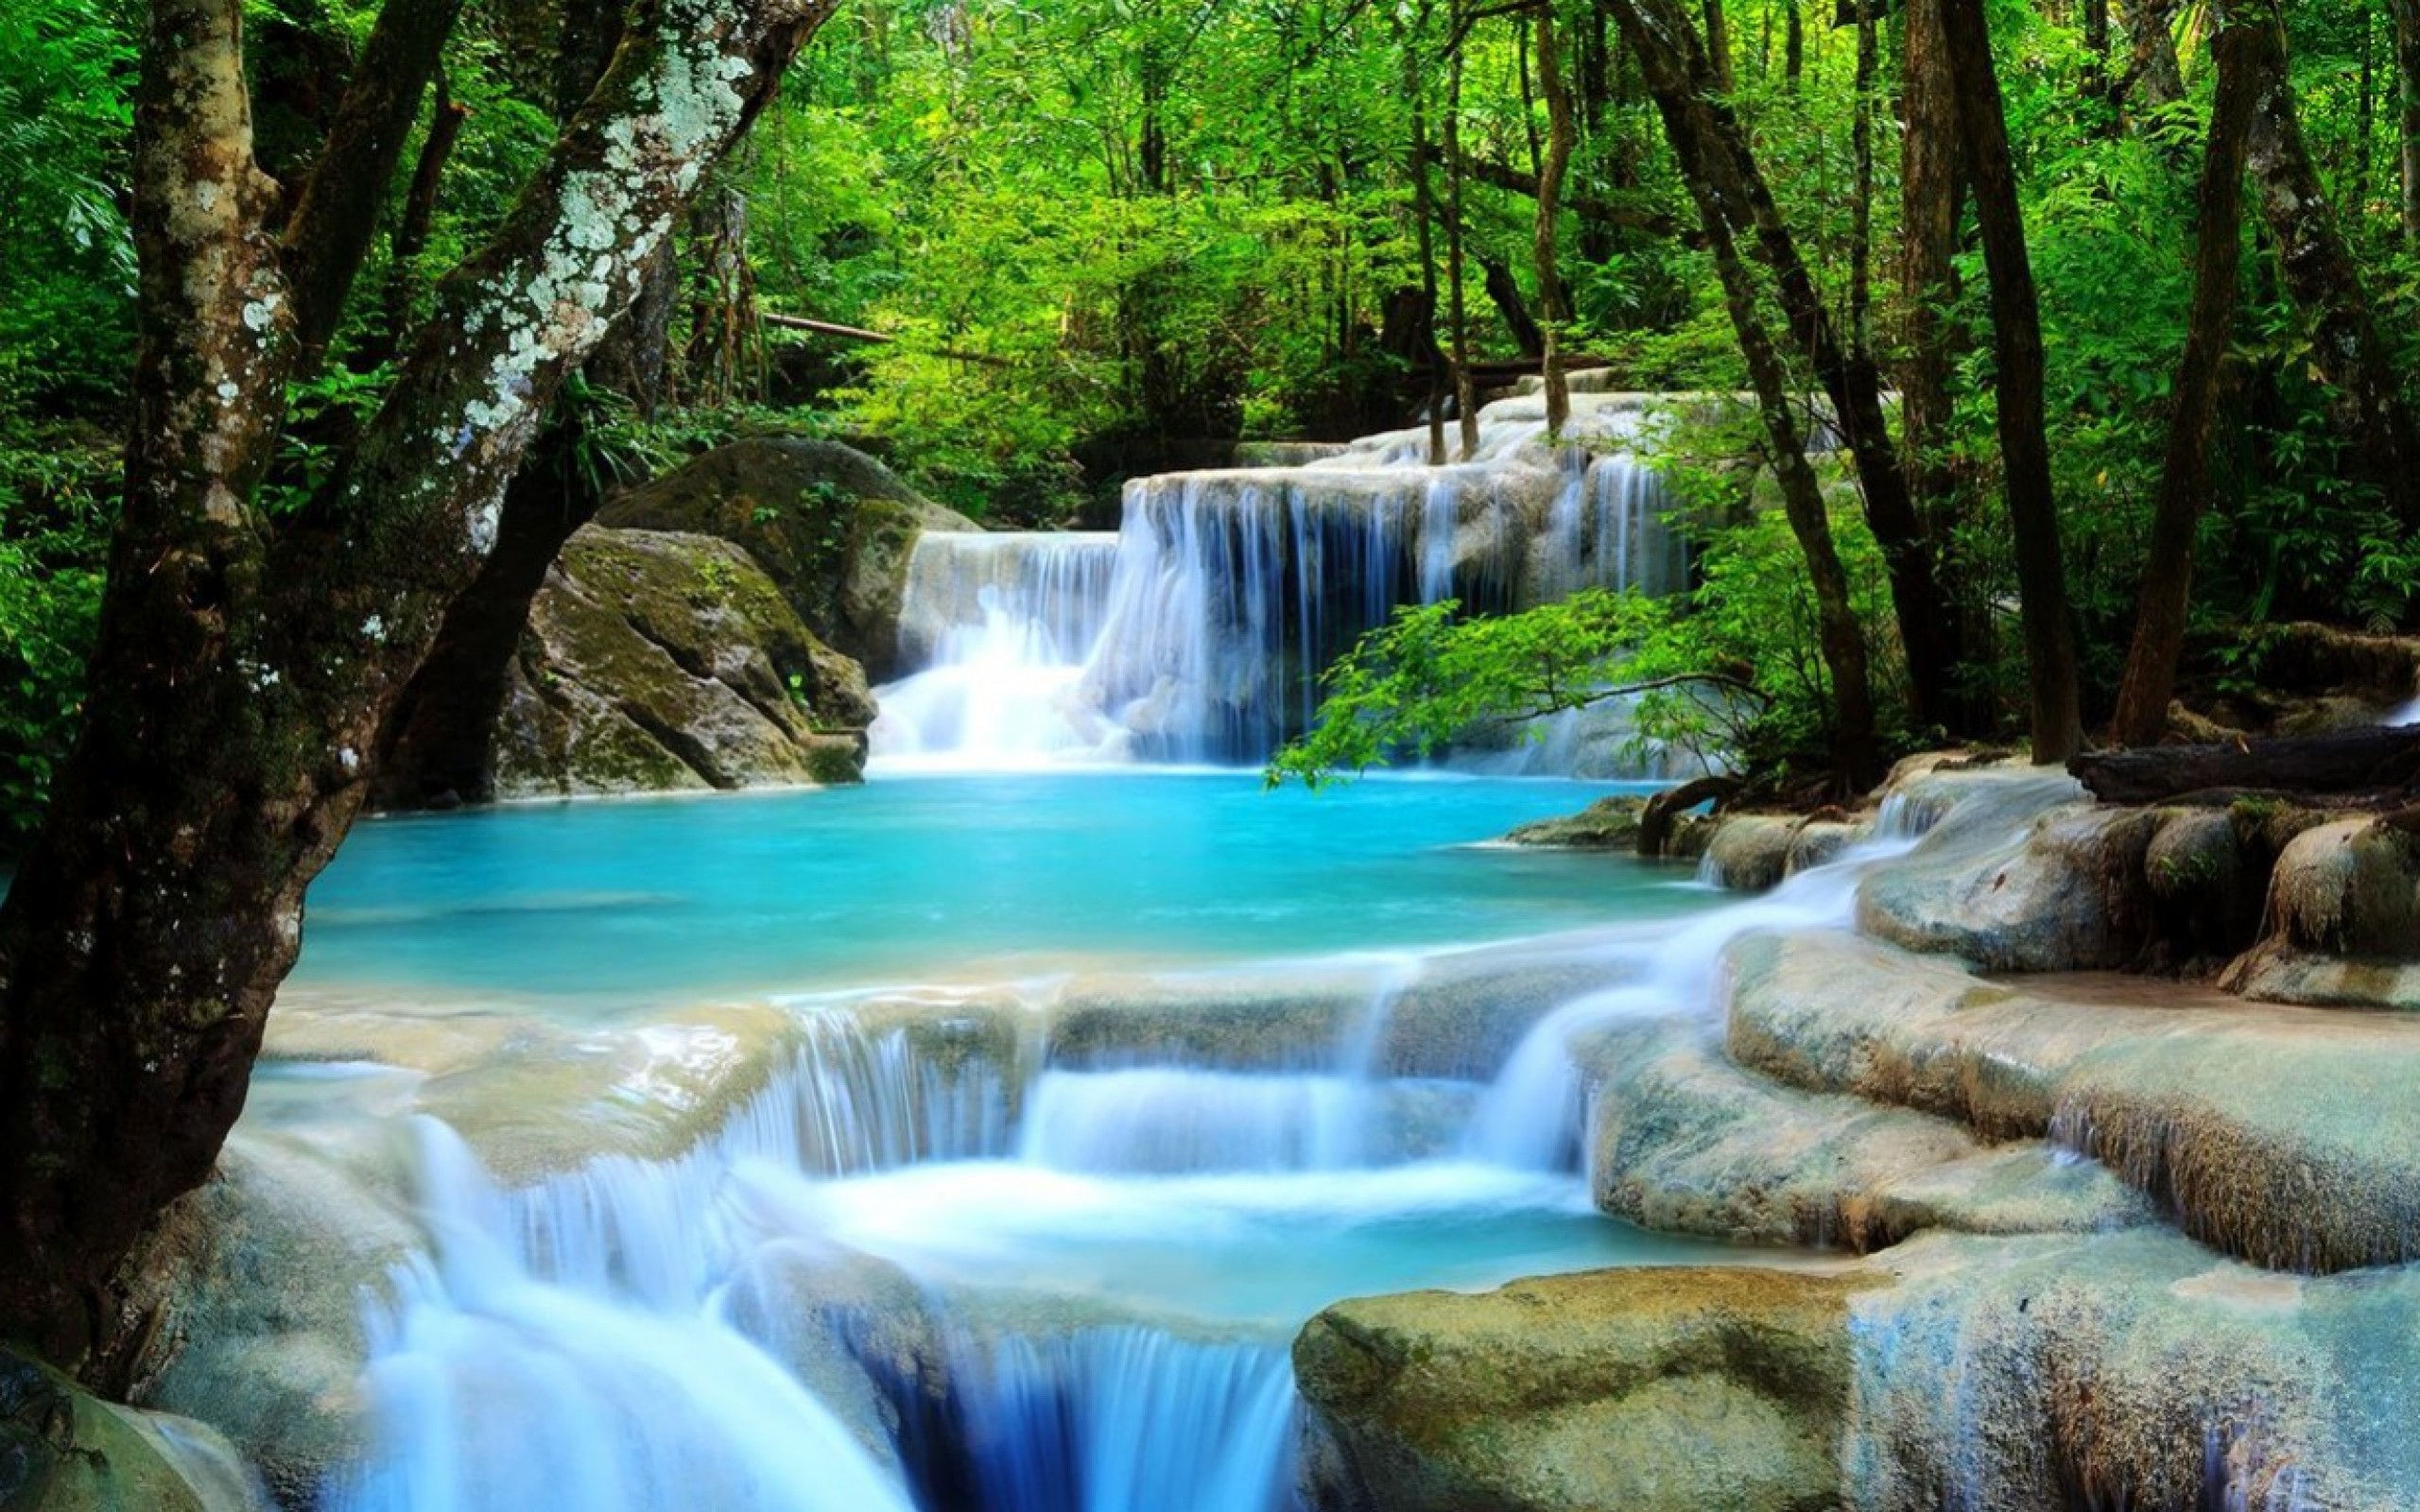 download 3d waterfall live wallpaper which is under the waterfall 2560x1600